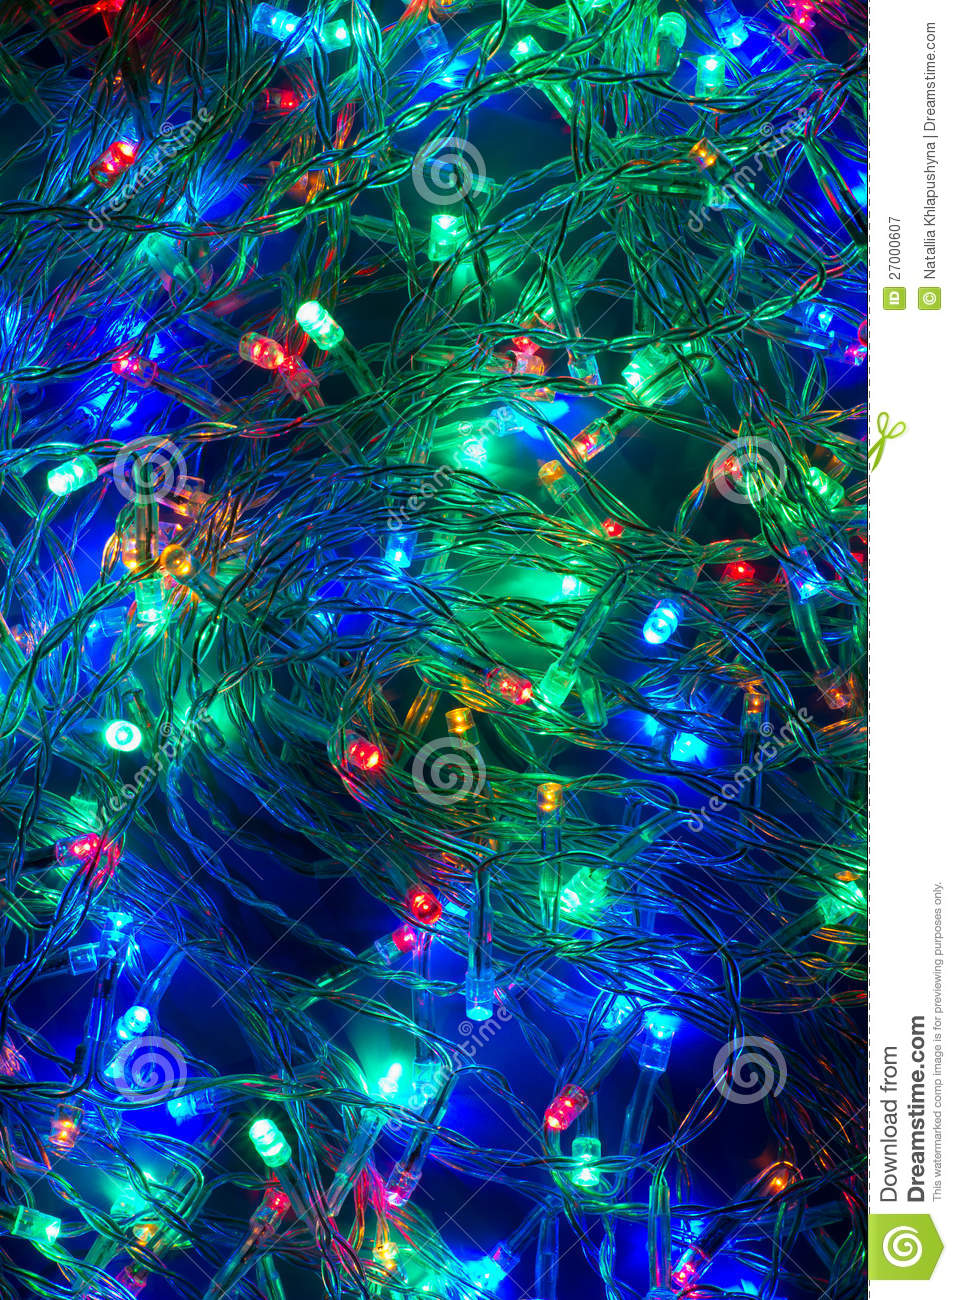 Electric Christmas Lights Background Garland Stock Image